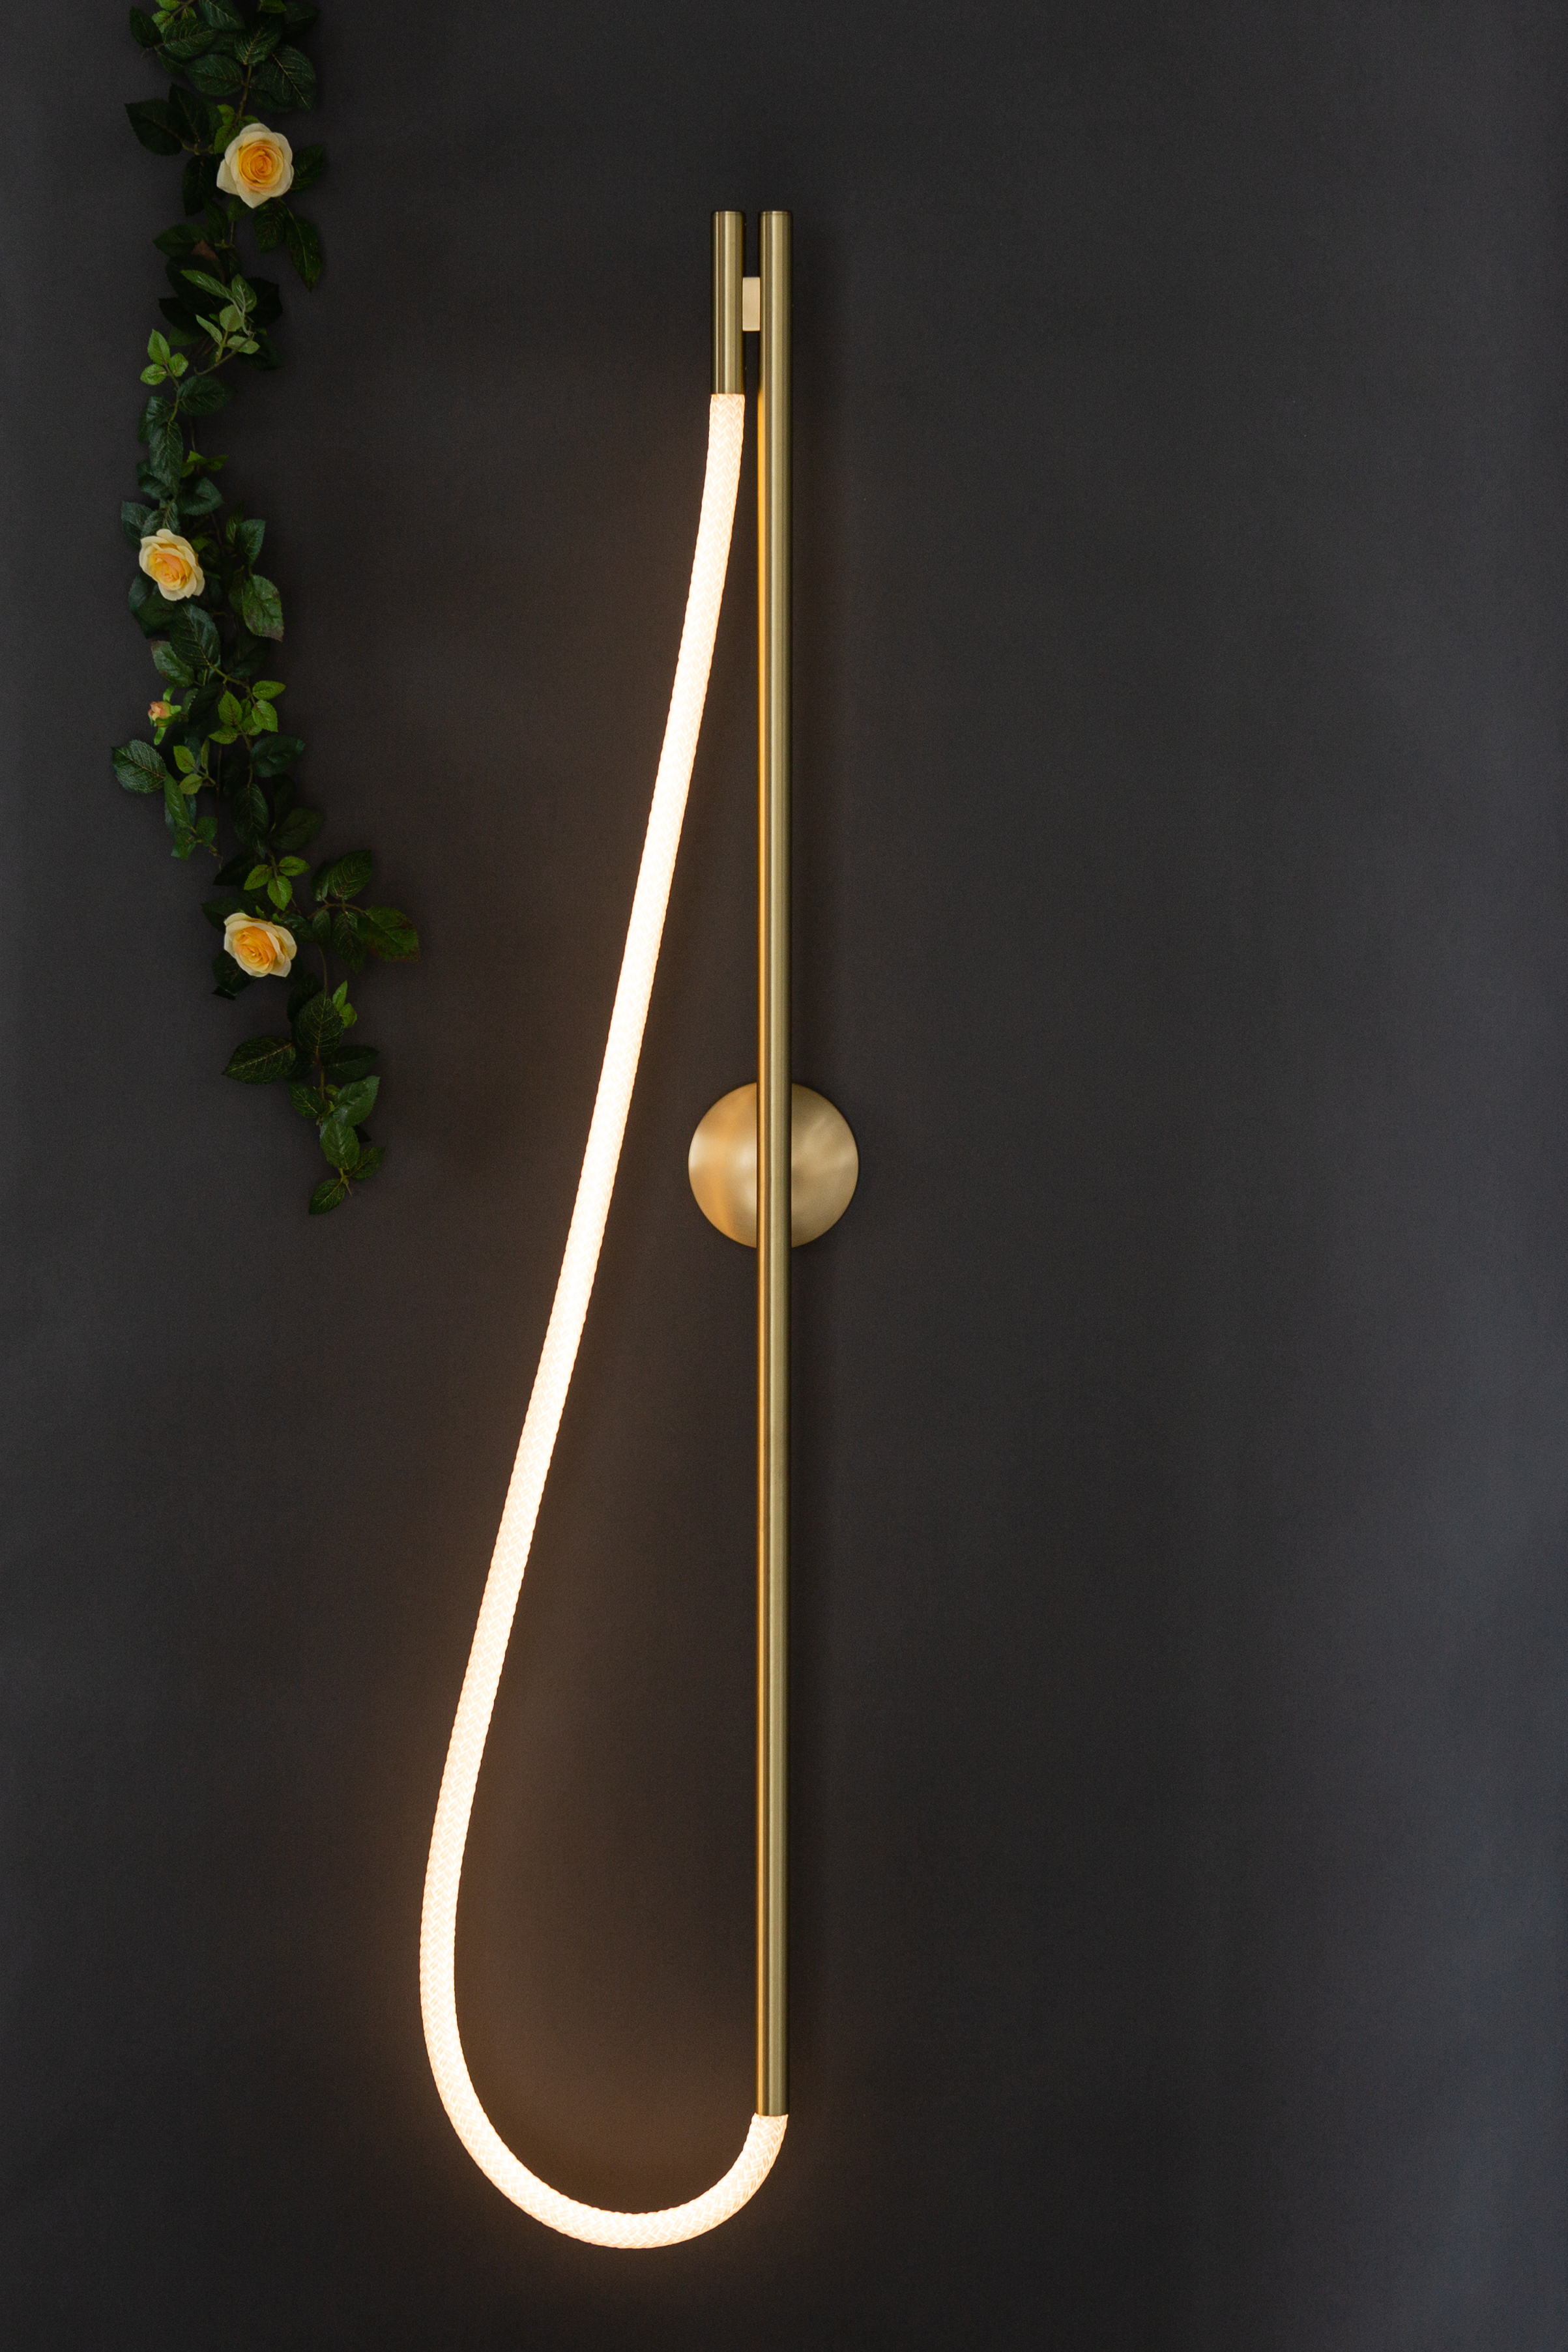 As pictured: 4.5' Artemis Sconce in Satin Brass - Vertical Orientation